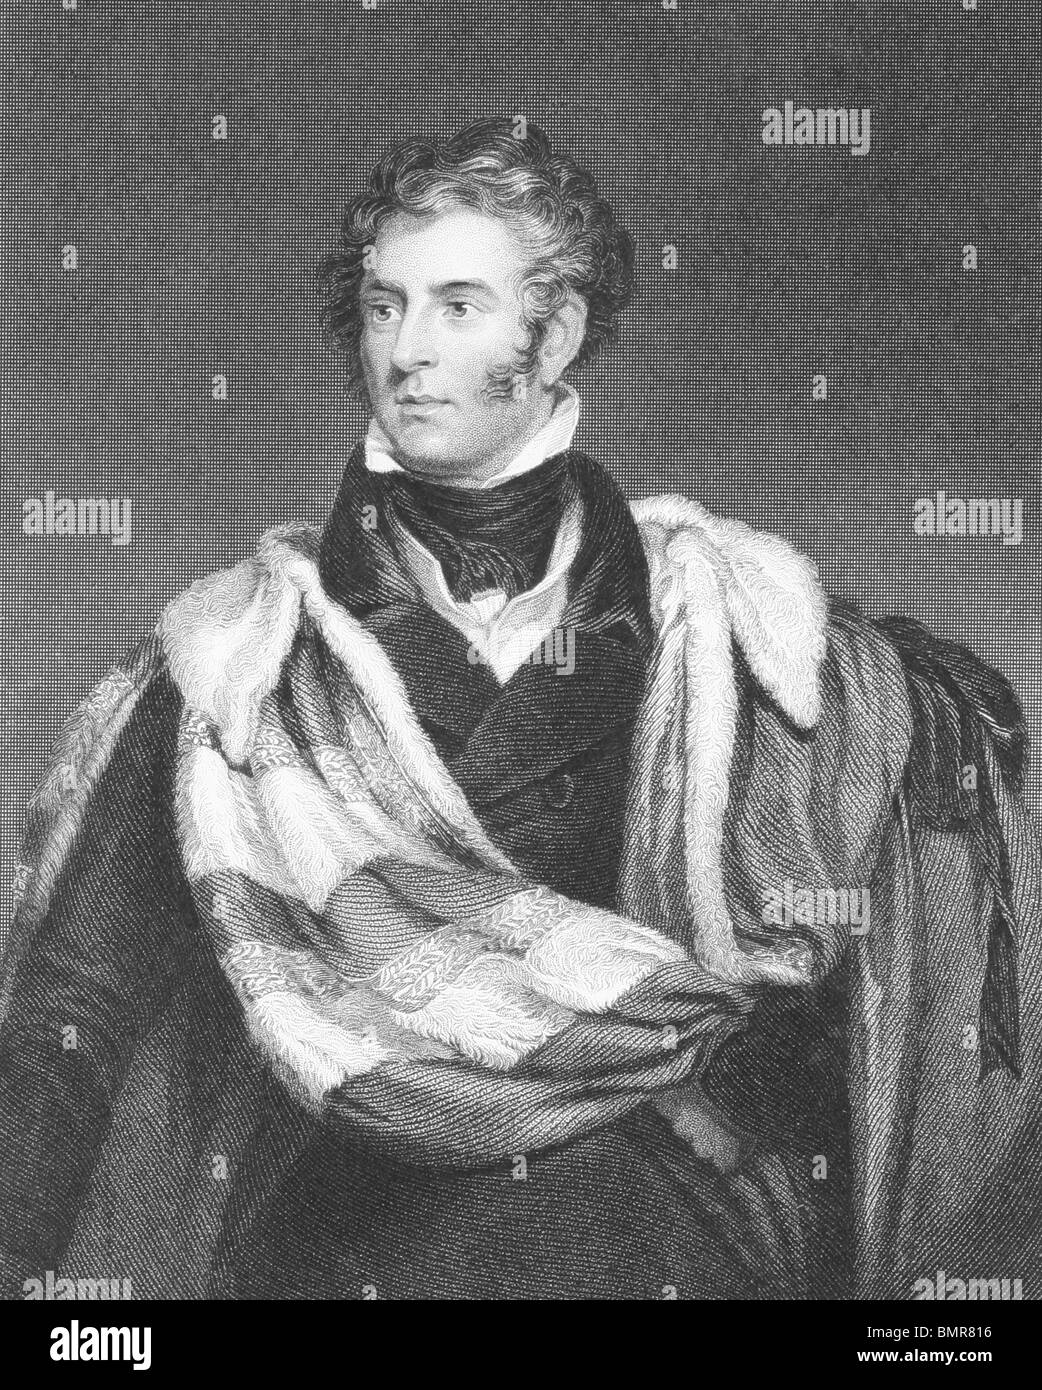 Thomas Philip de Grey, 2nd Earl de Grey (1781-1859) on engraving from the 1800s. British Tory politician and statesman. - Stock Image